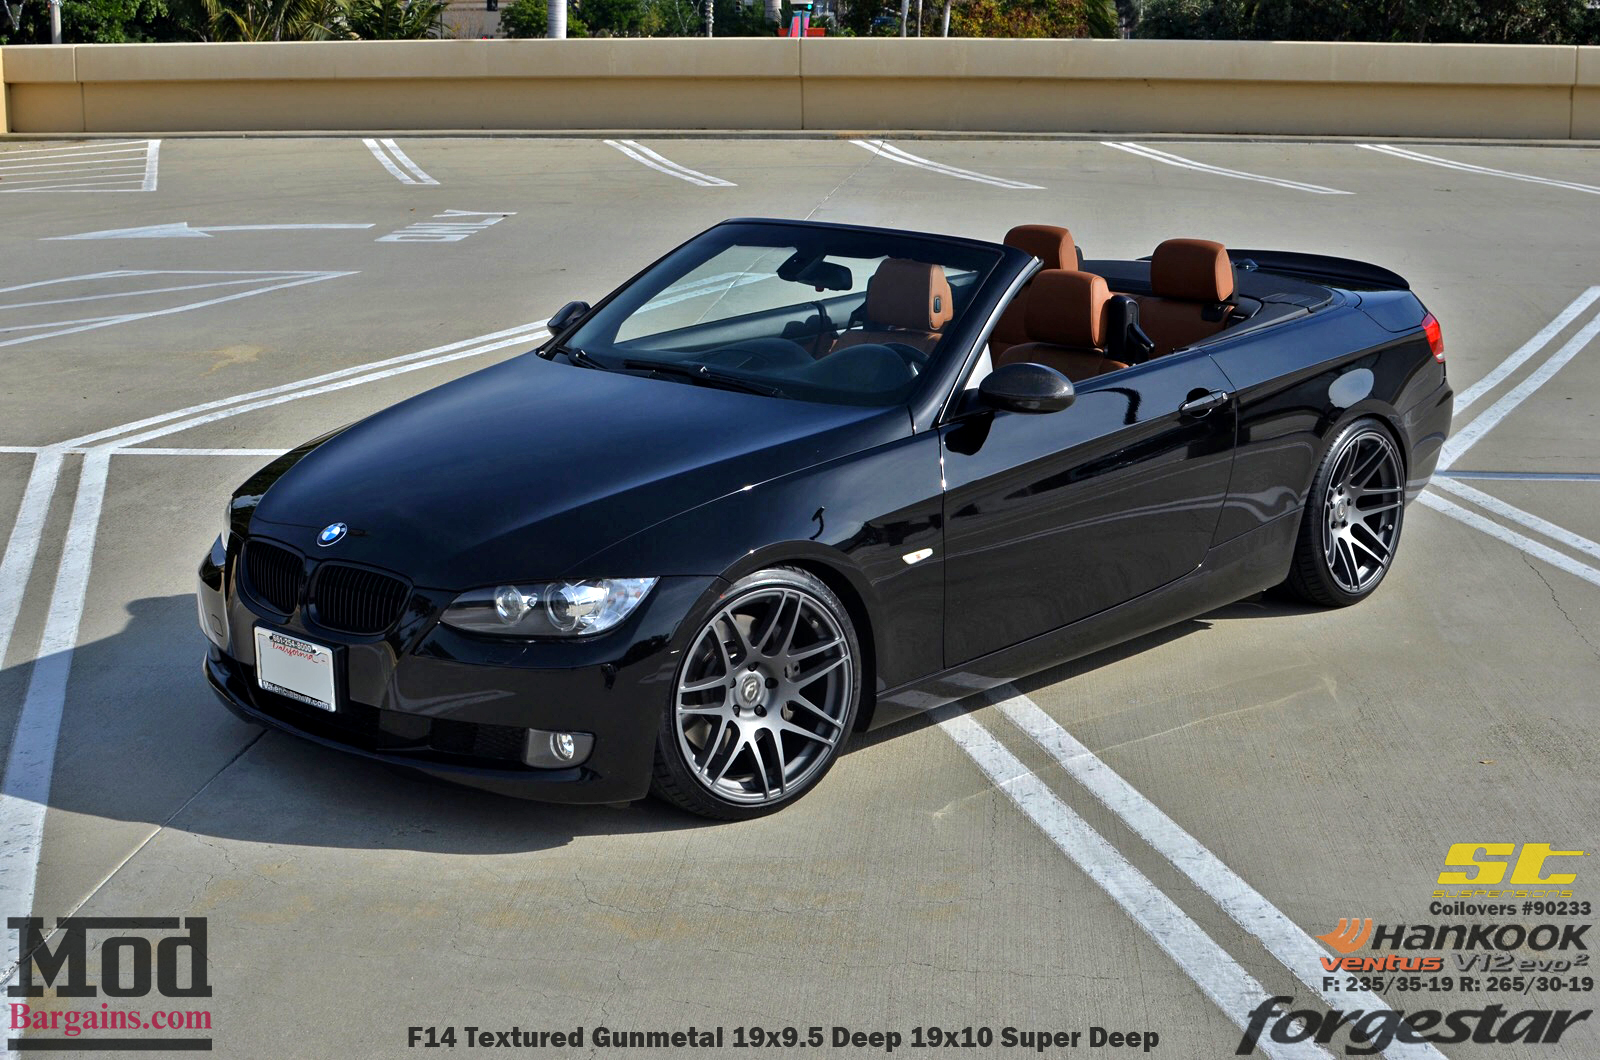 jeff k 39 s bmw e93 on st coilovers with forgestar f14 wheels. Black Bedroom Furniture Sets. Home Design Ideas